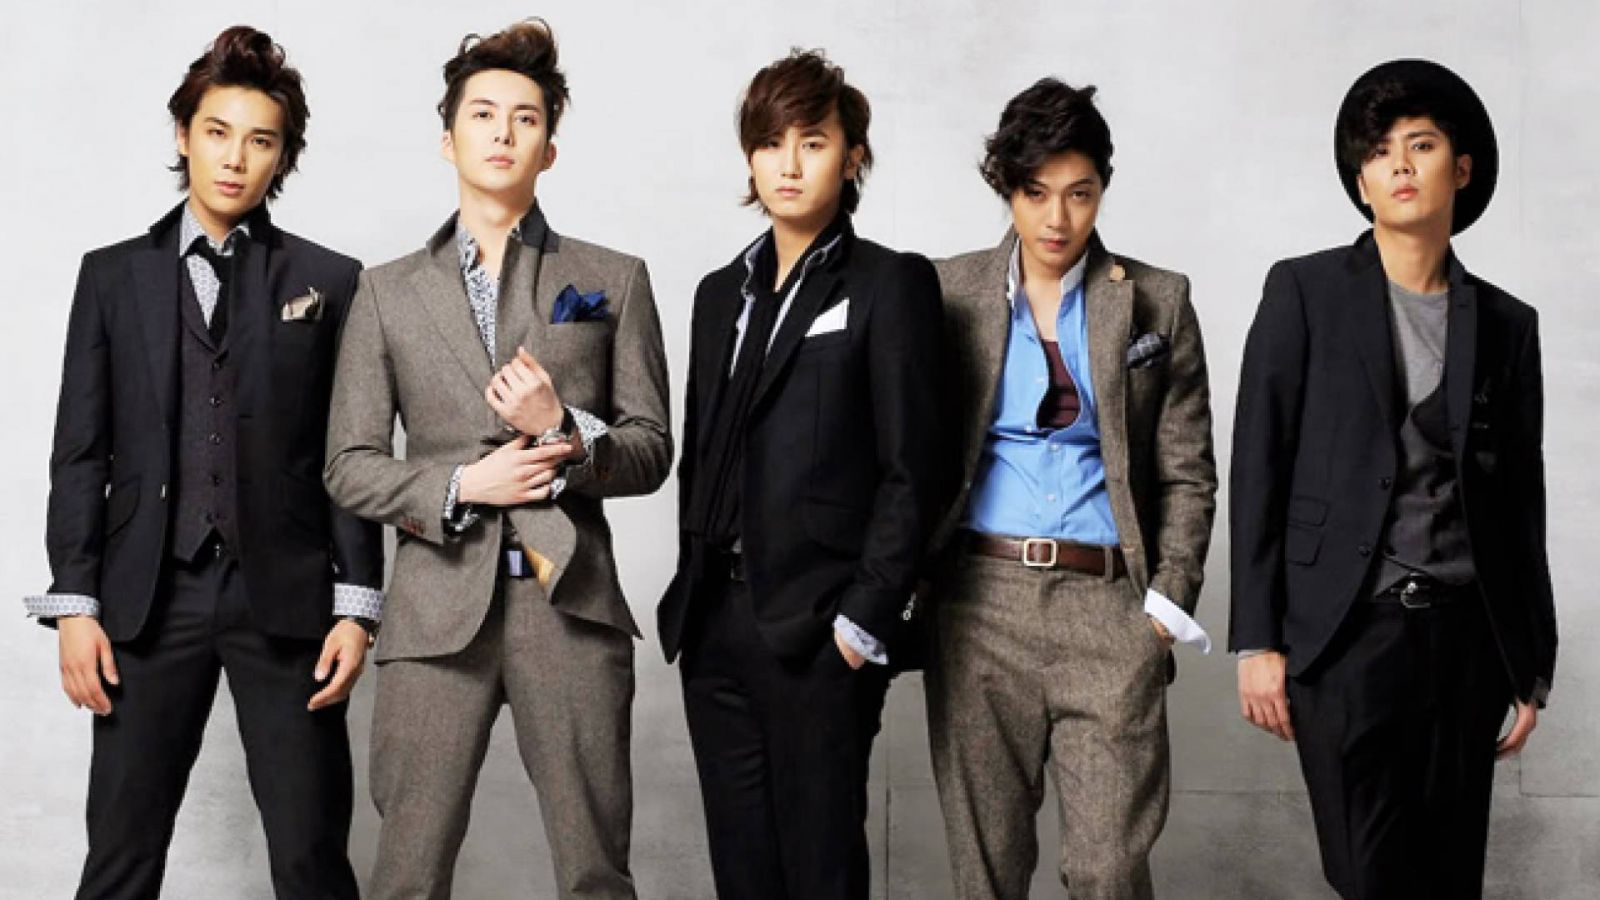 SS501 © DSP Entertainment